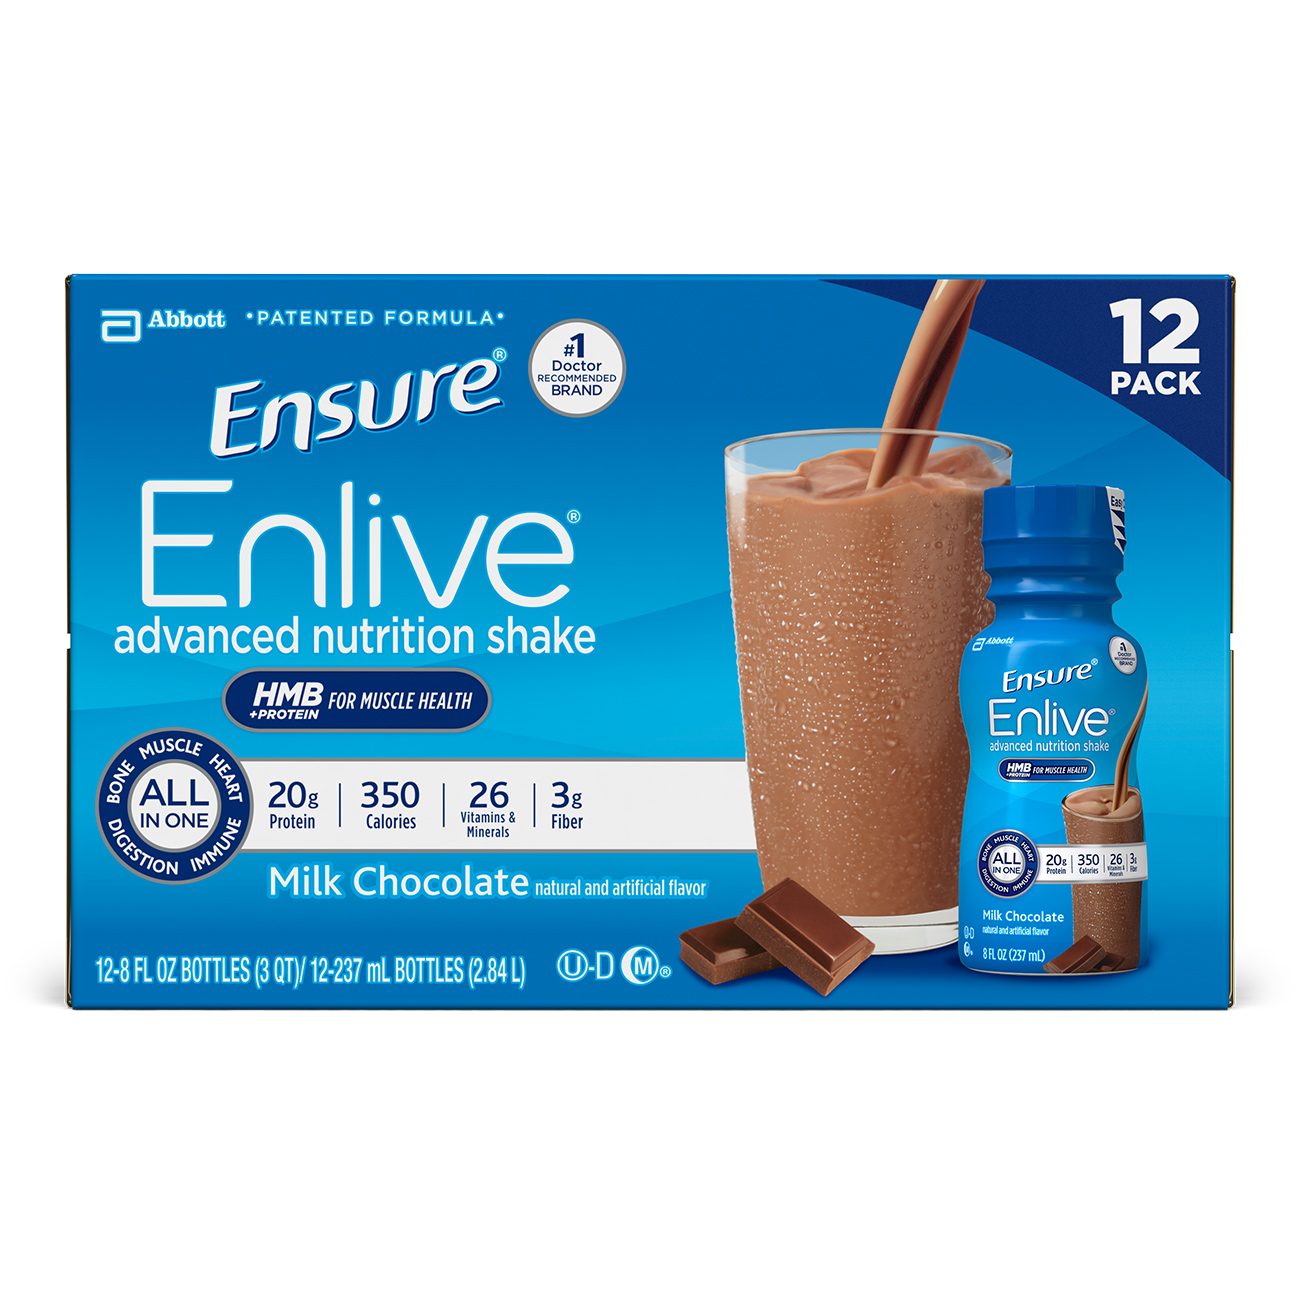 Ensure Enlive Advanced Nutrition Shake with 20 grams of High-Quality protein, Meal Replacement Shakes, Milk Chocolate, 8 fl oz, 12 count